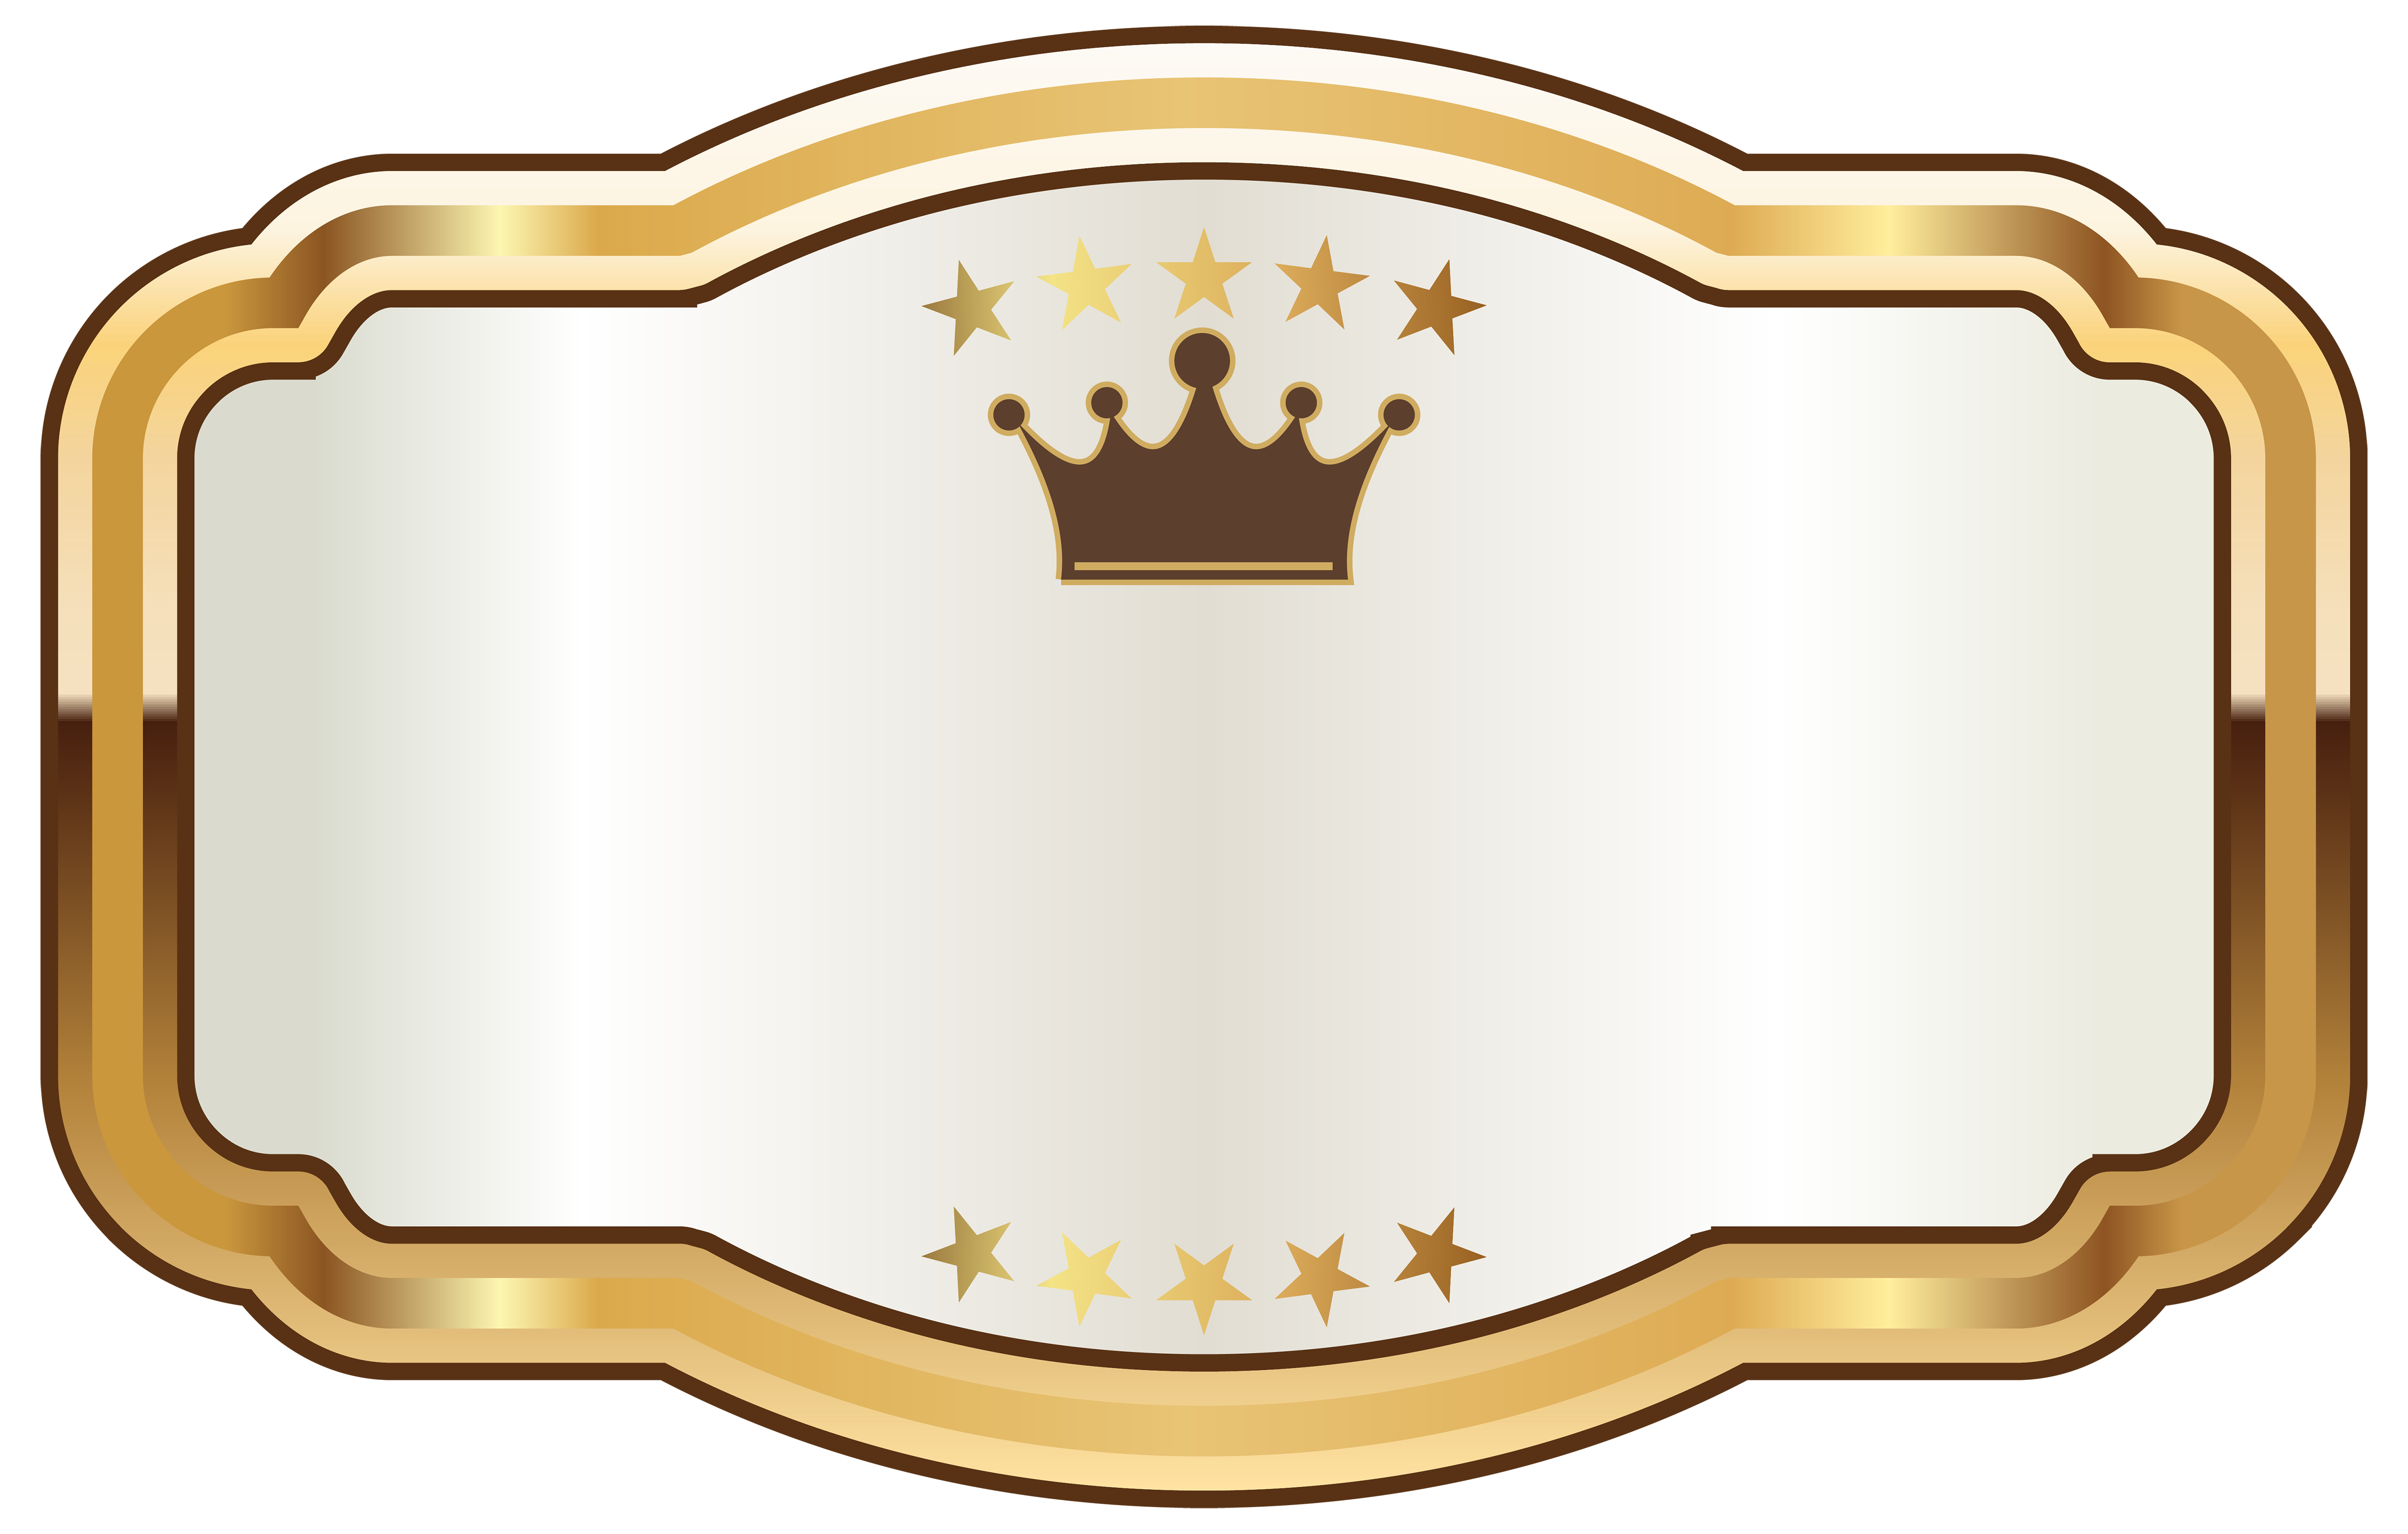 White labels png. Label with gold crown